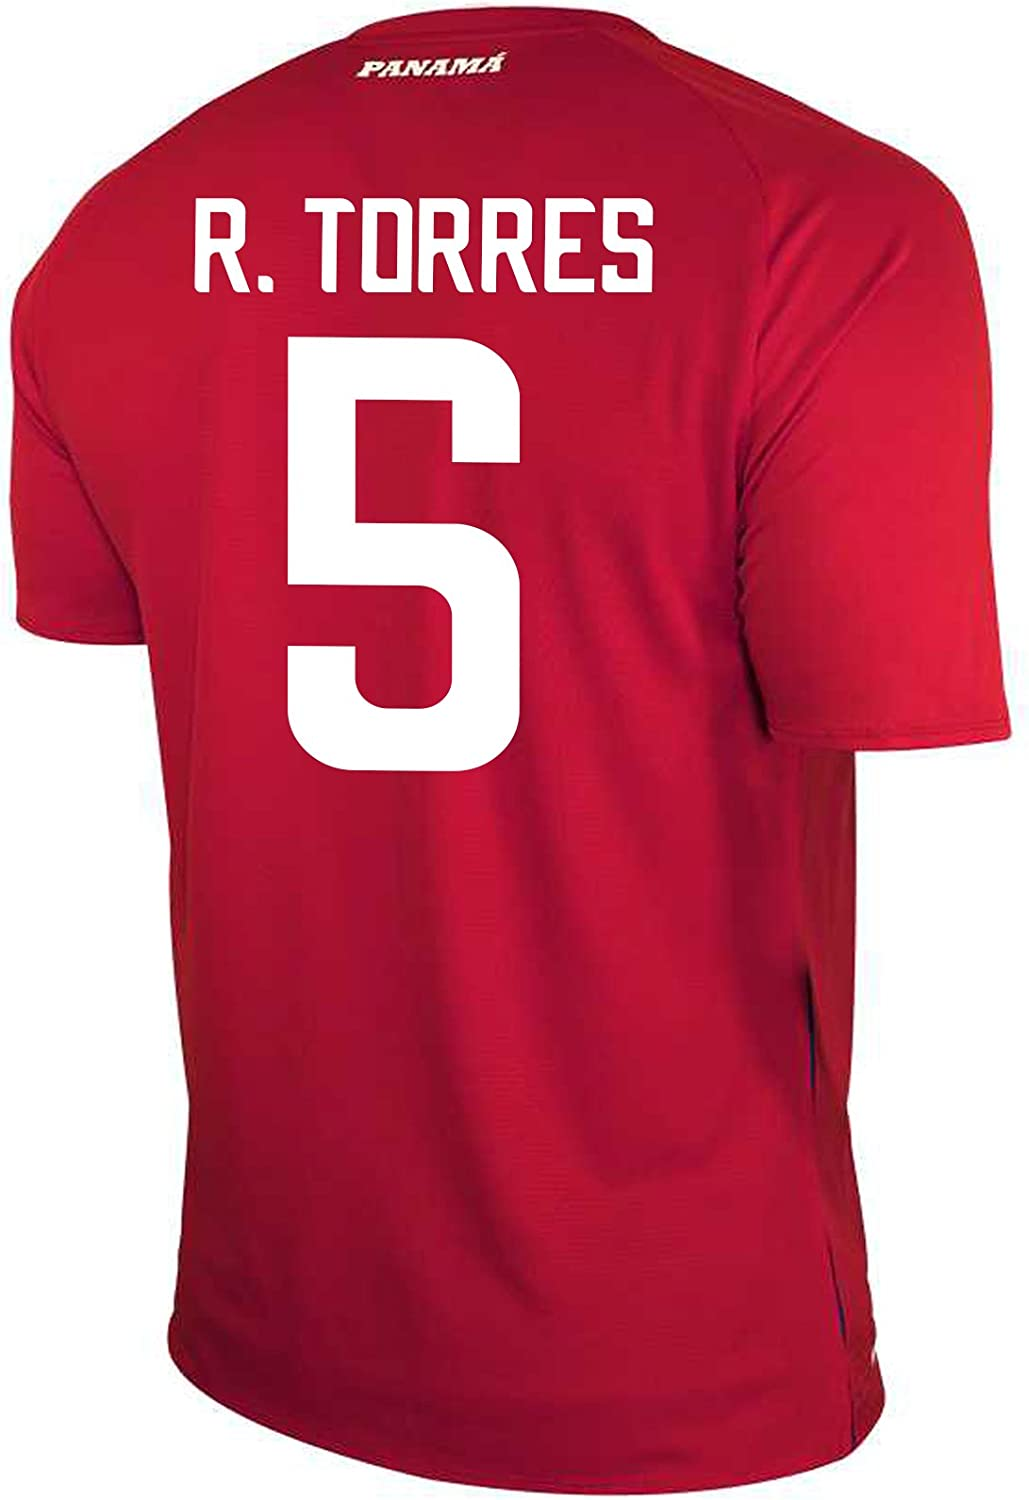 New Balance R. Torres  5 Panama Home Soccer Men's Jersey FIFA World Cup Russia 2018